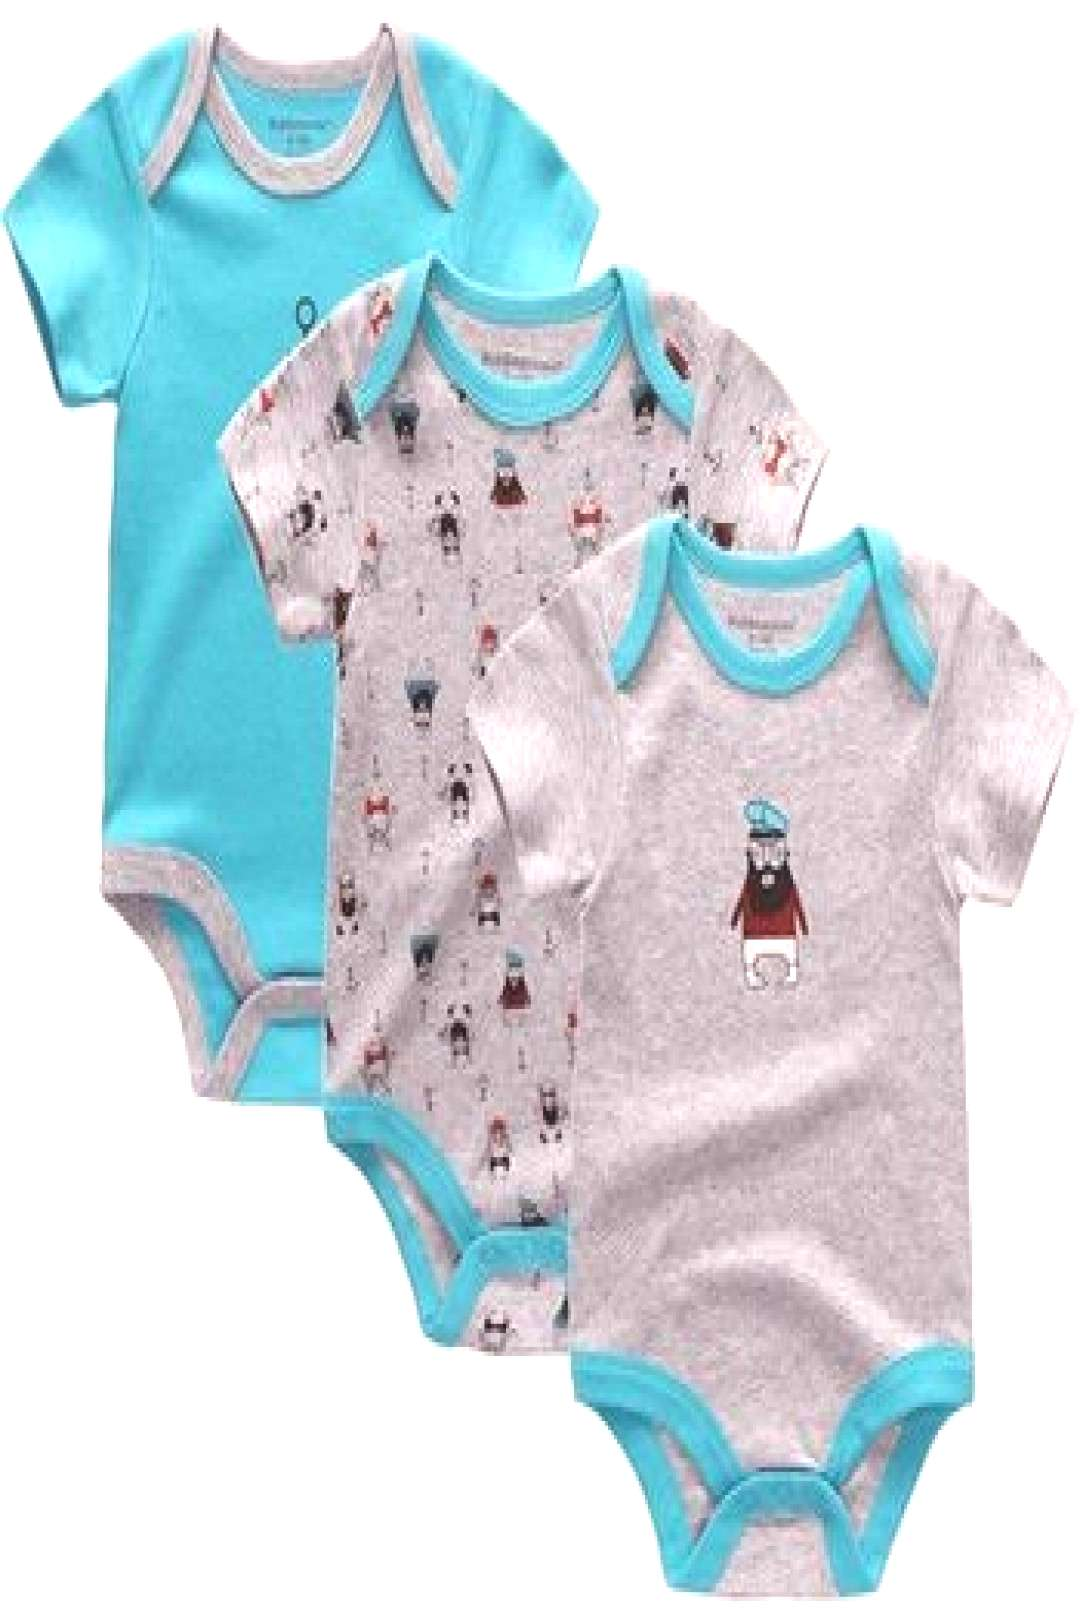 2019 Sale Winter clothes Fantasia Infantil Baby Girl Family Sayings Short Sleeve...#baby